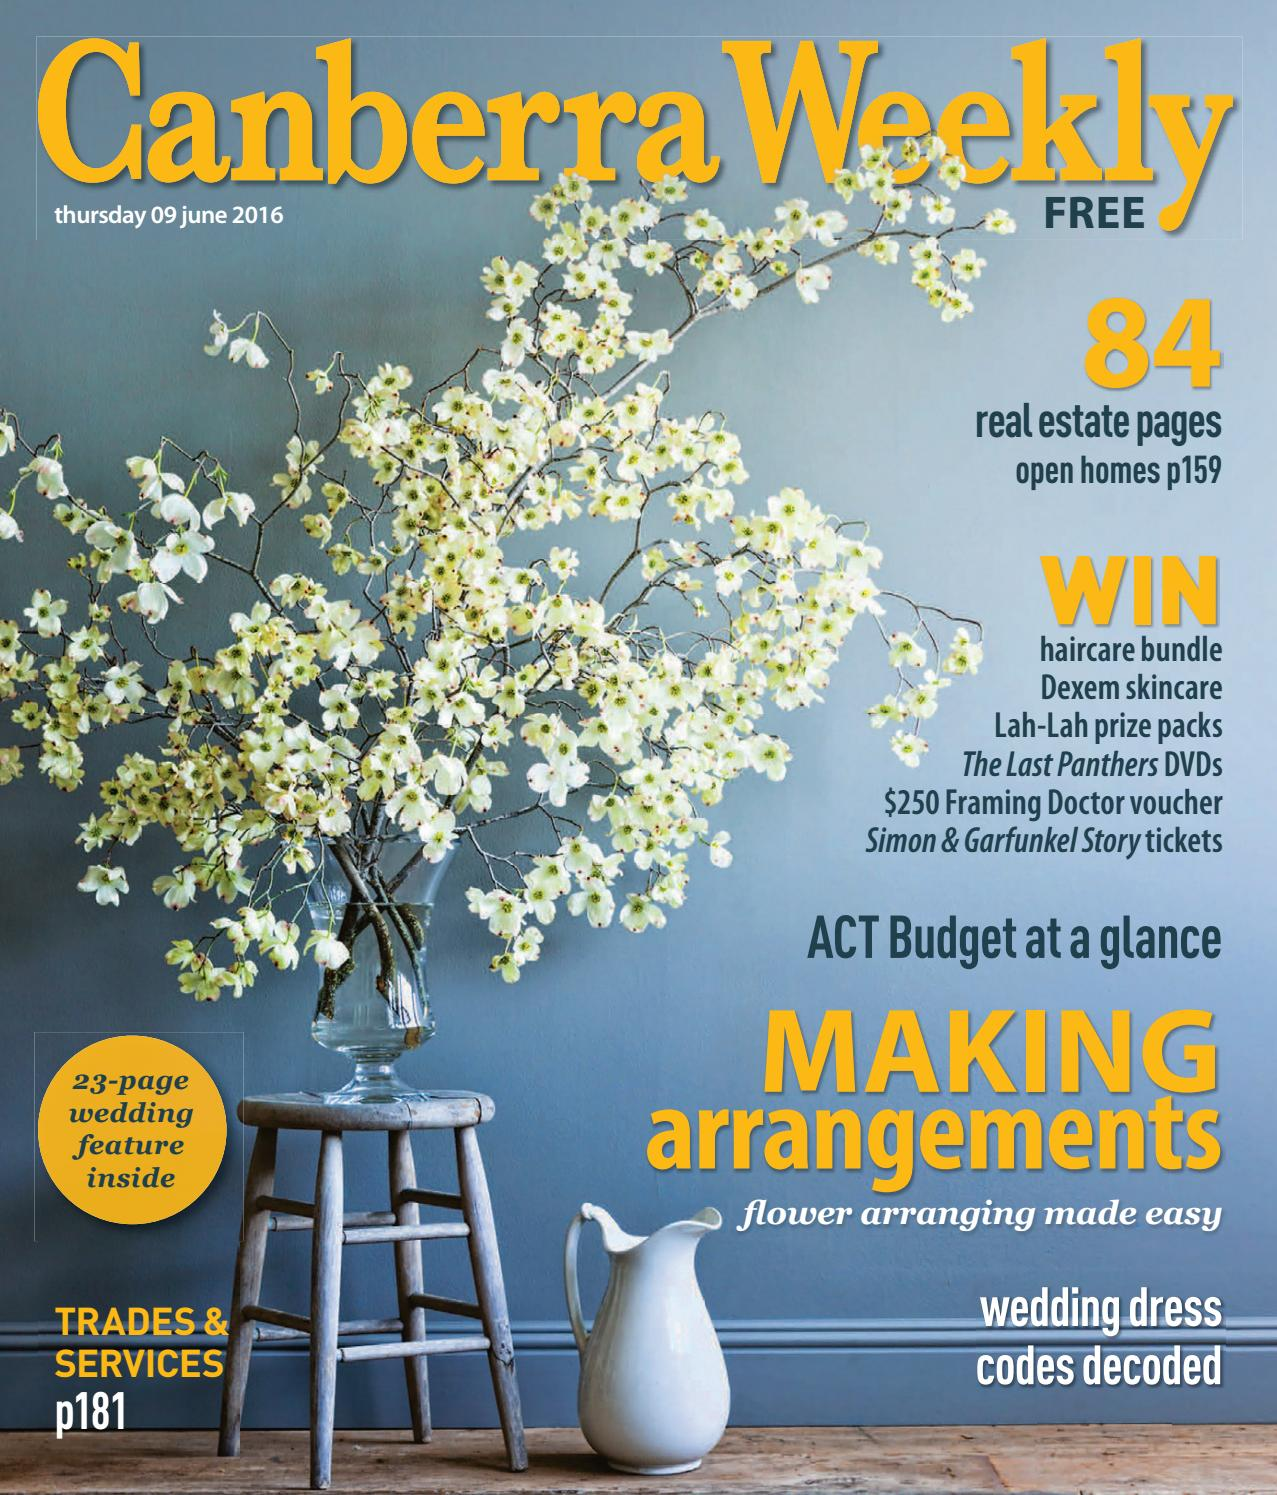 27 october 2016 by canberra weekly magazine issuu